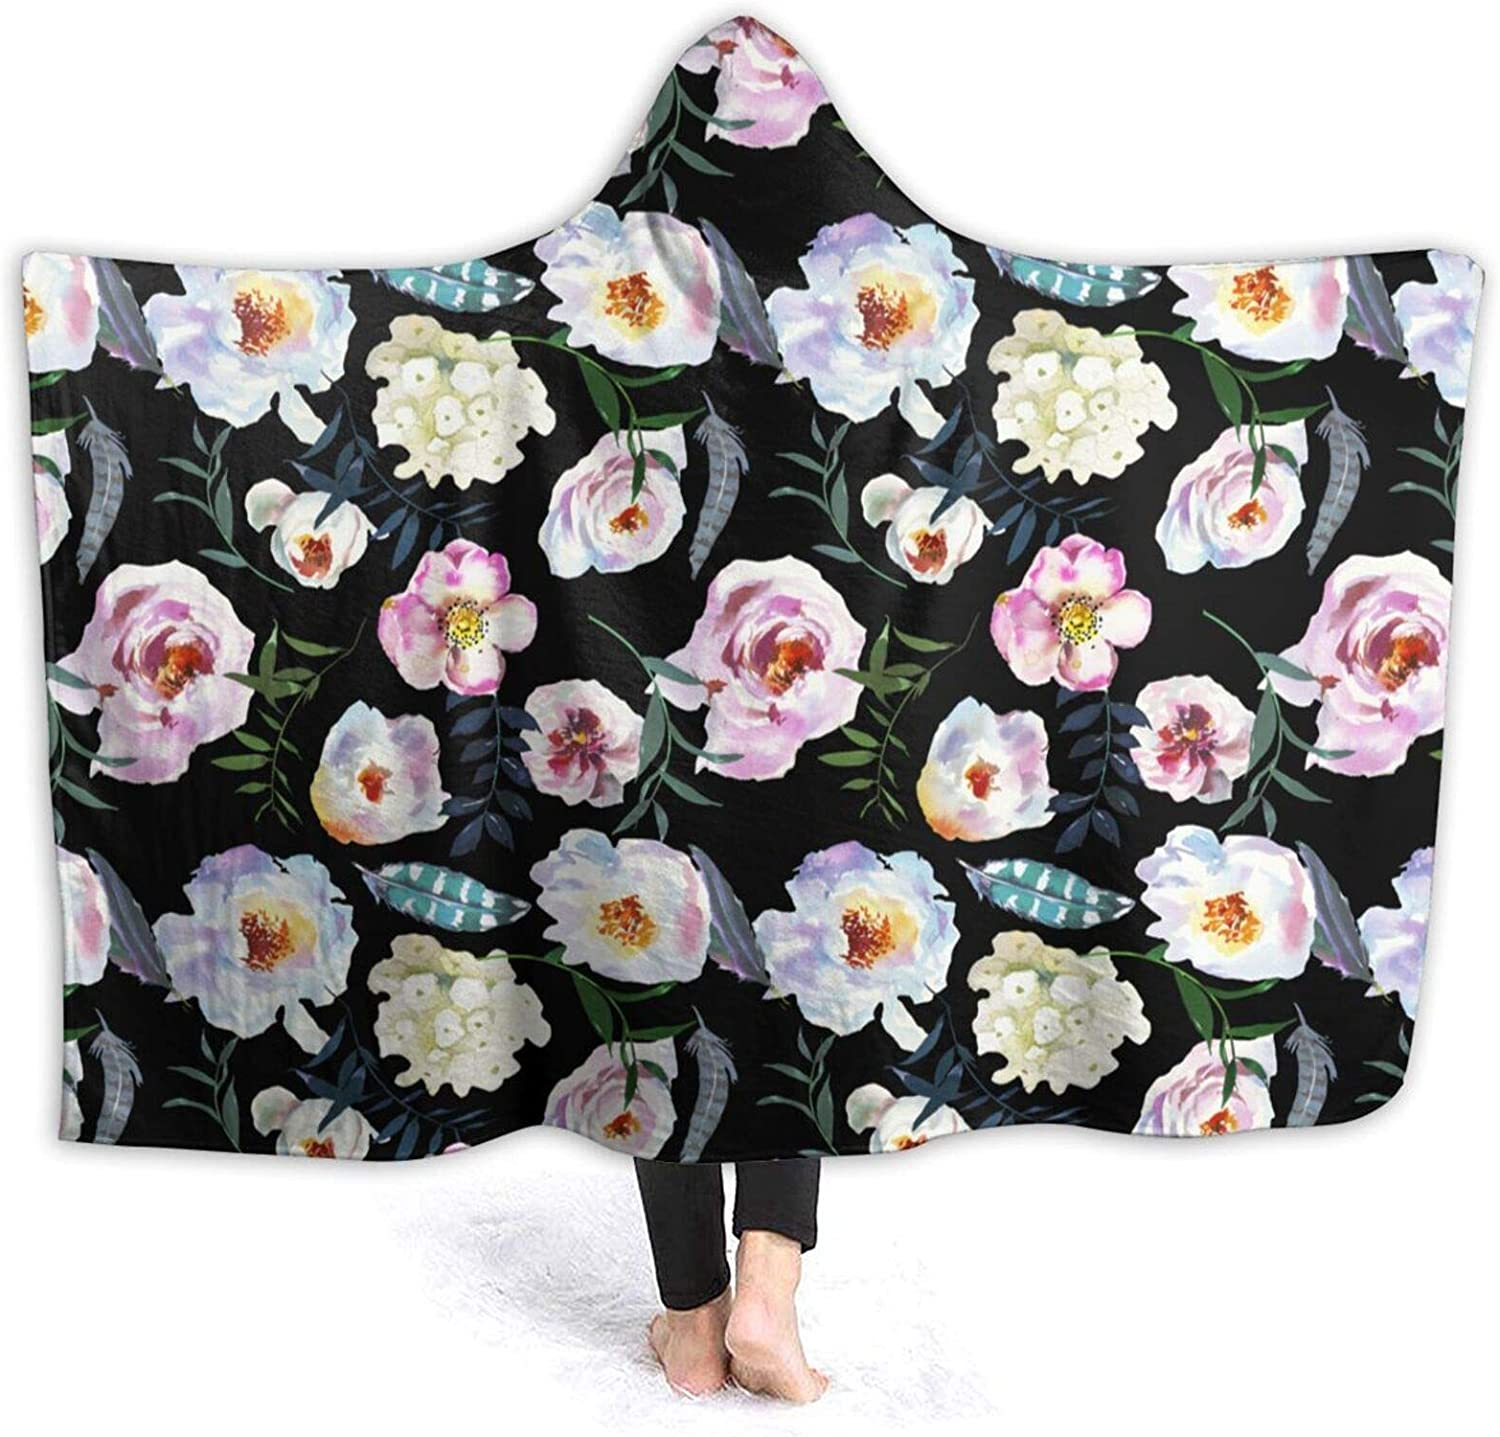 Max 62% OFF Creative Gift Hooded Blanket Watercolor Flowers Co Boho San Diego Mall Feathers